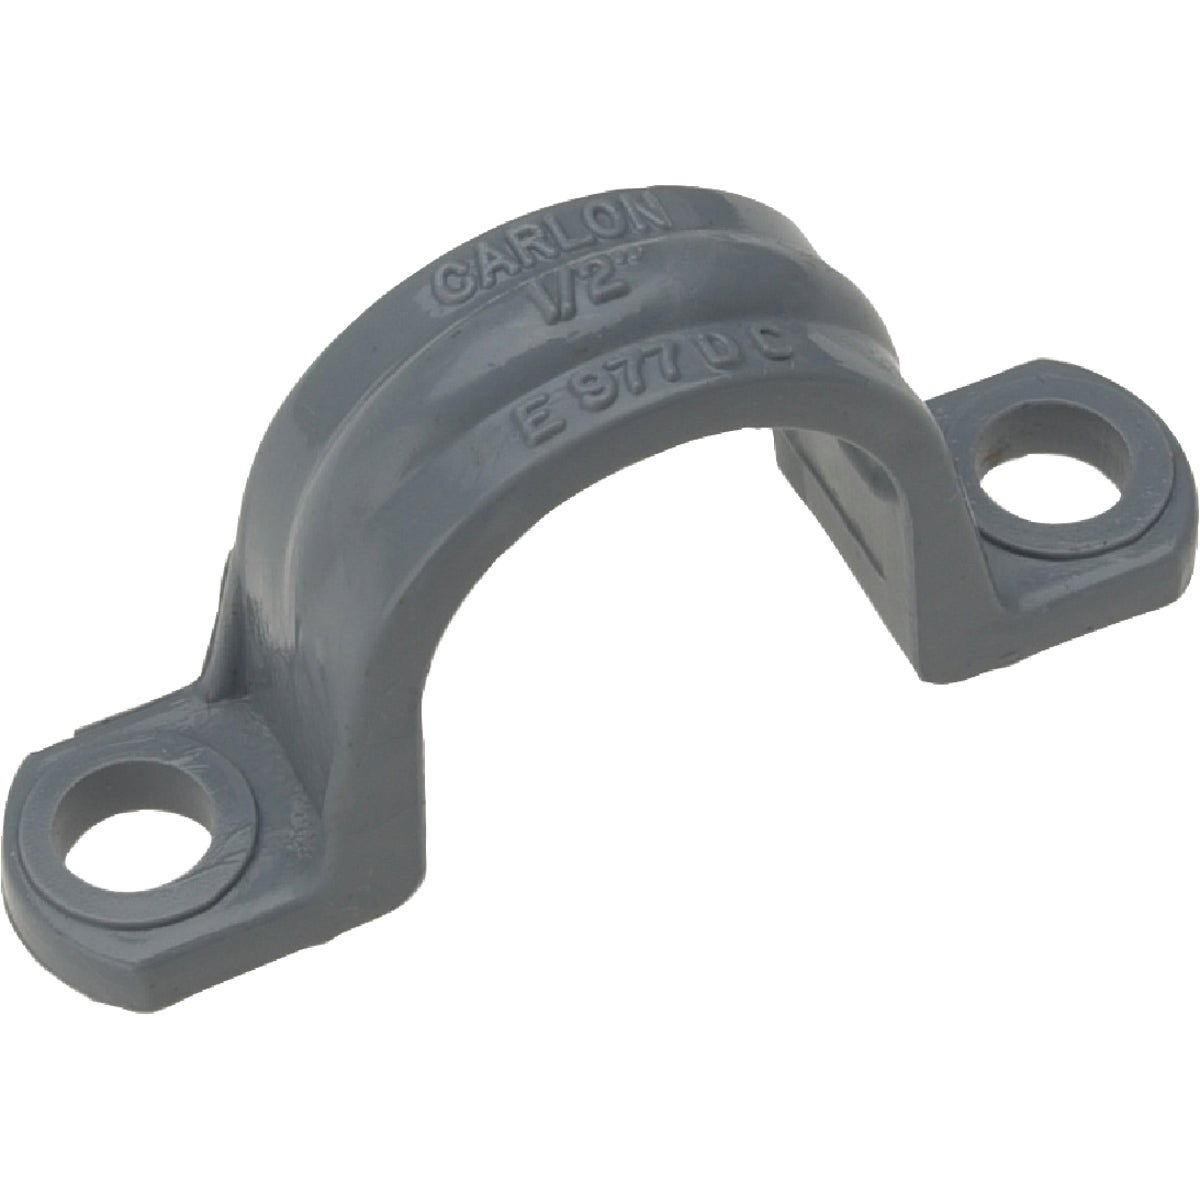 "5 PK 1-1/4"" PVC STRAP - E977GCCTN by Thomas & Betts"